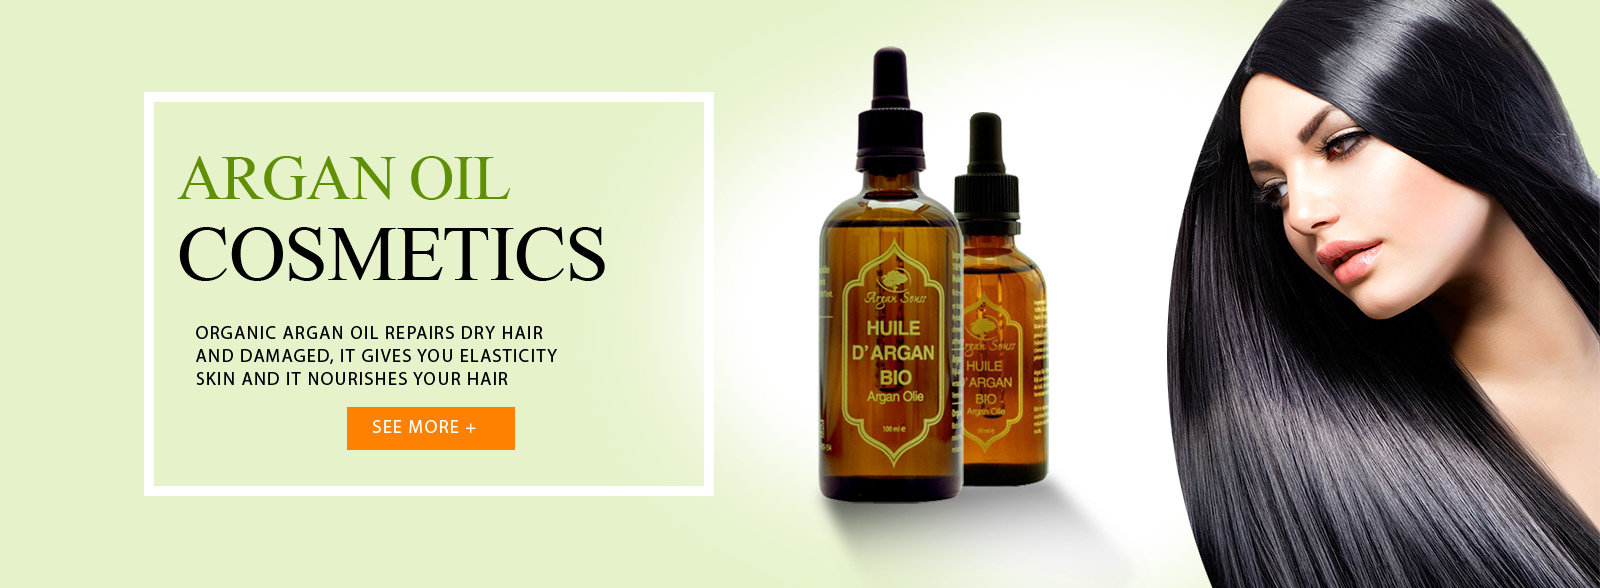 ORGANIC ARGAN OIL COSMETICS